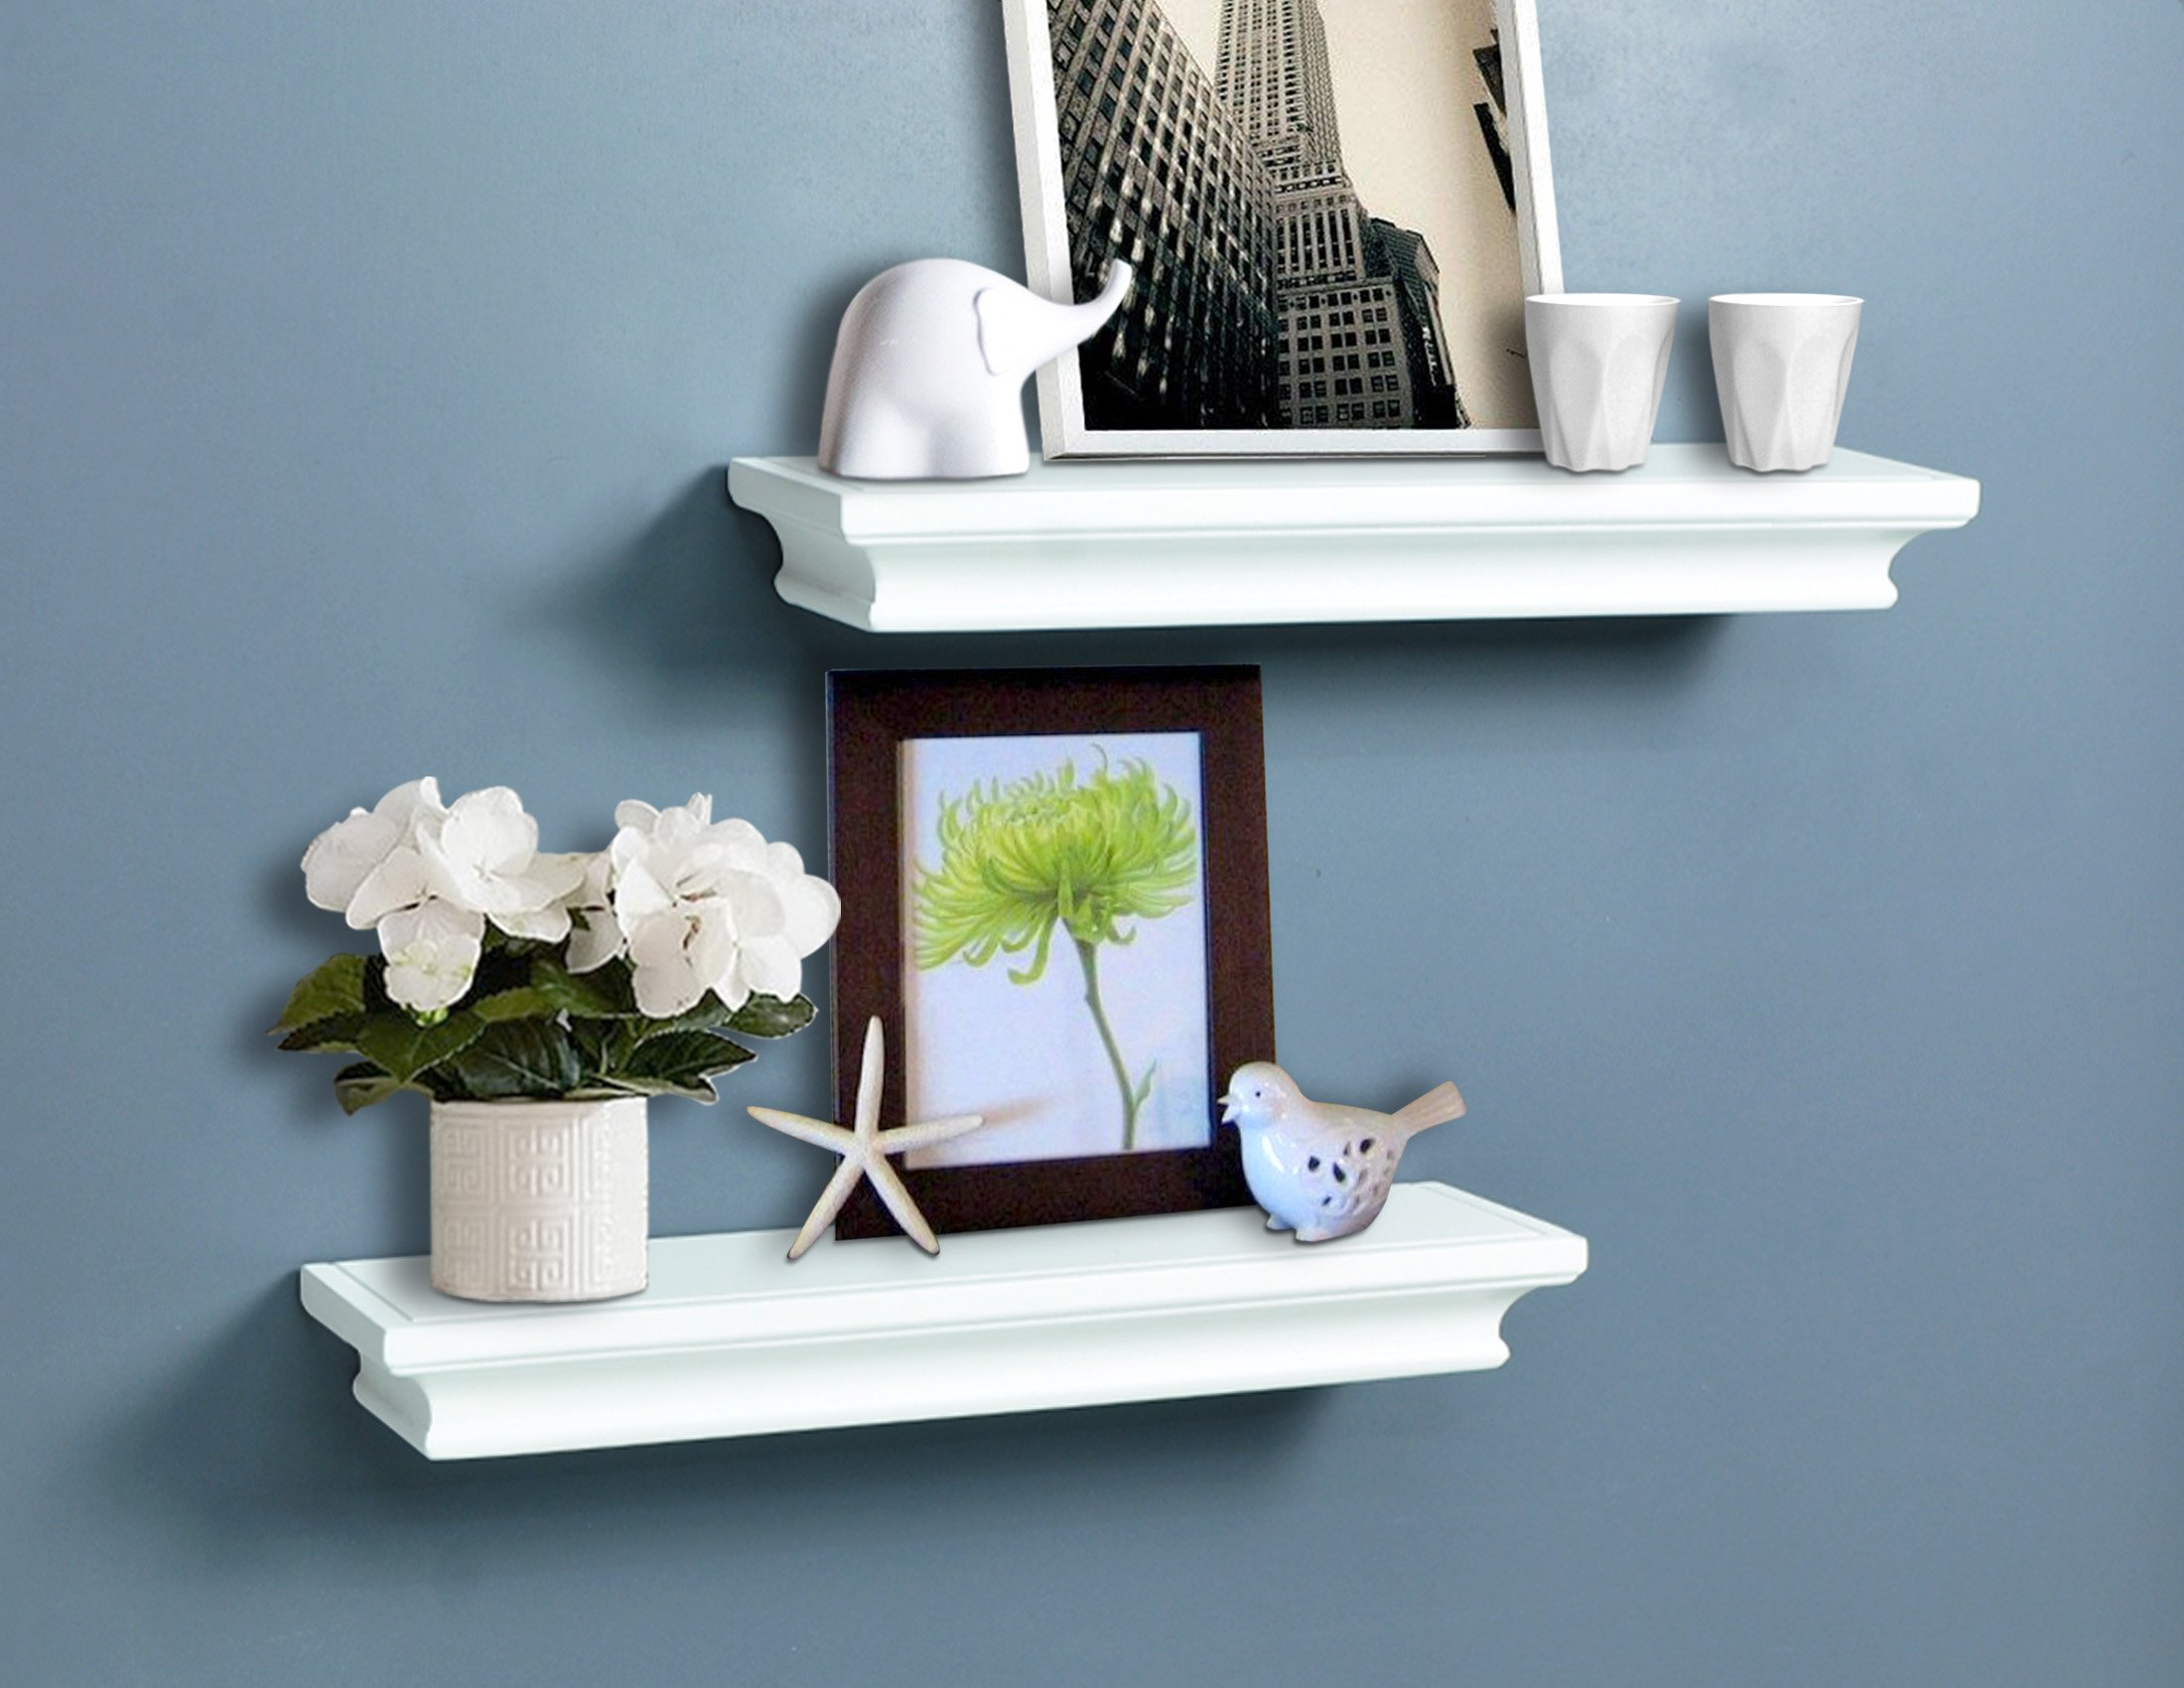 Best decorative shelves for bathroom | Amazon.com